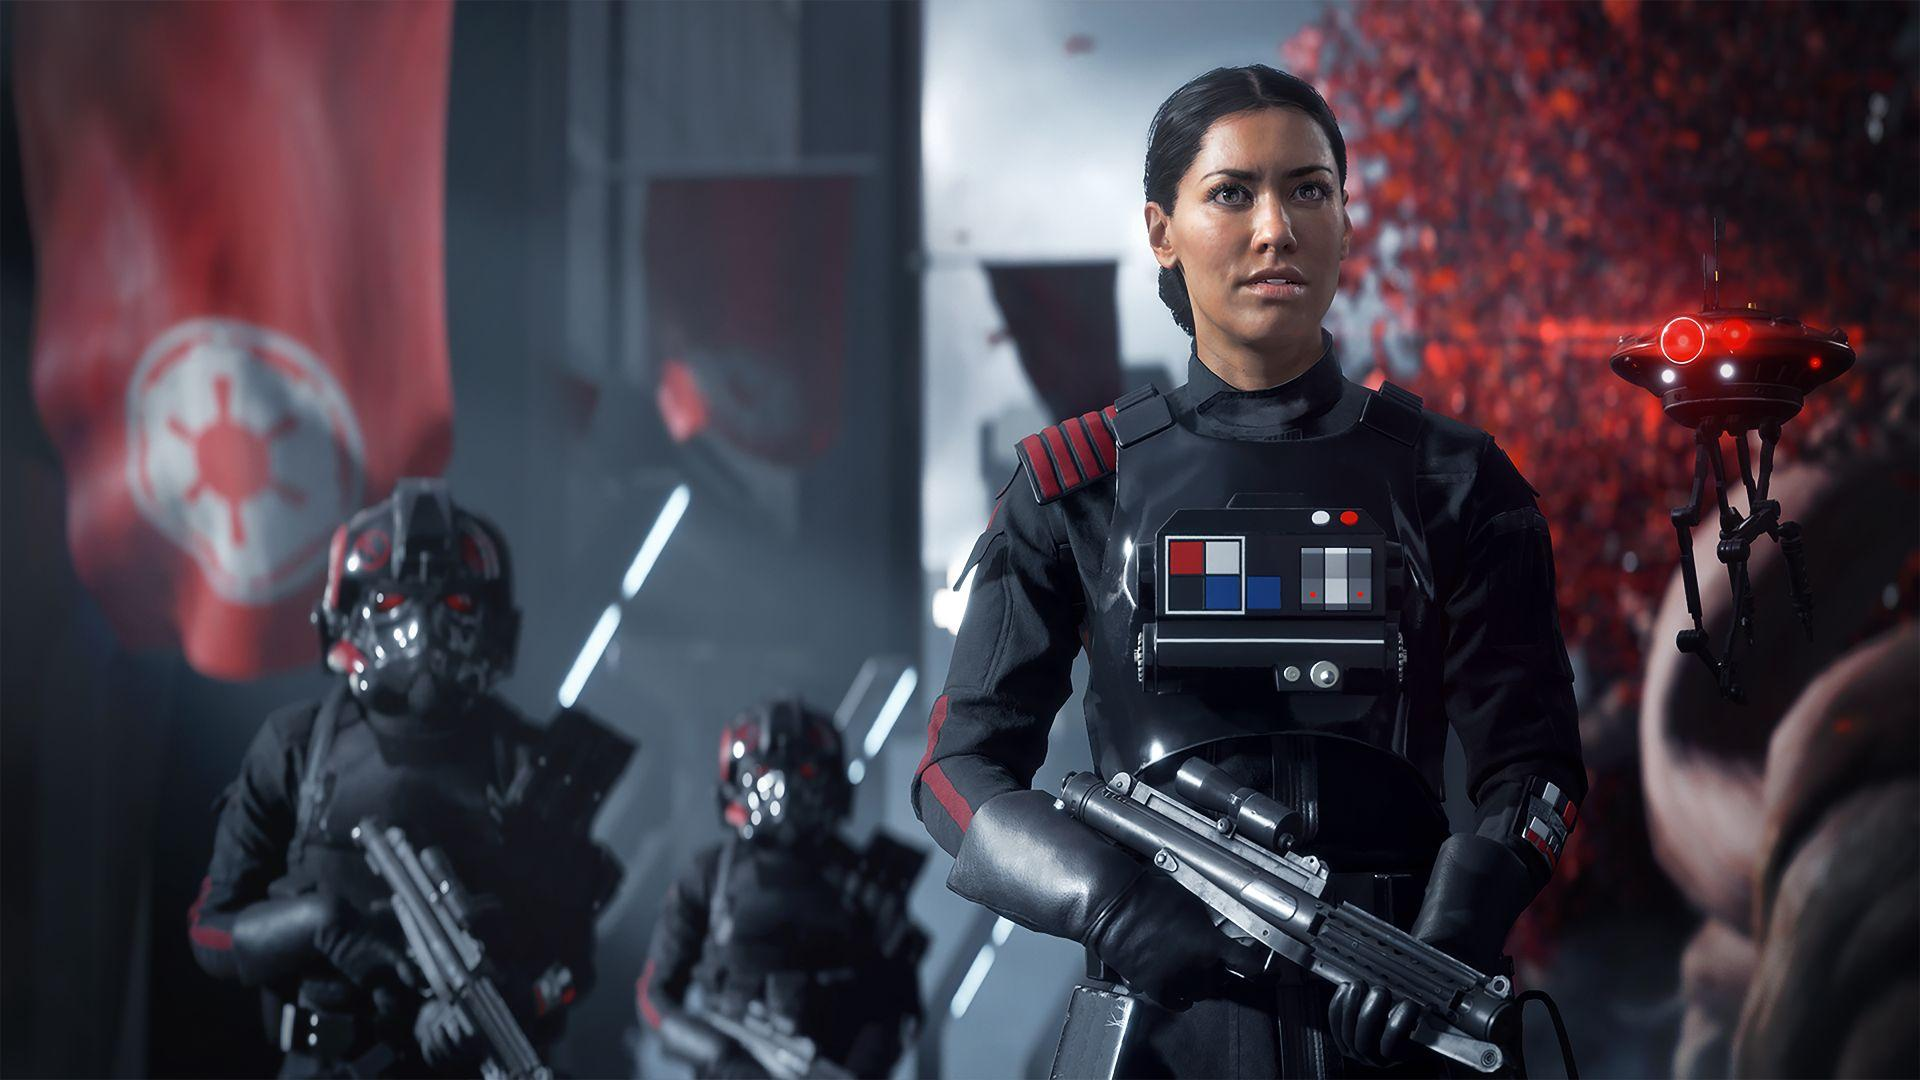 Star Wars Battlefront 2 S Story Mode Will Show The Imperial Point